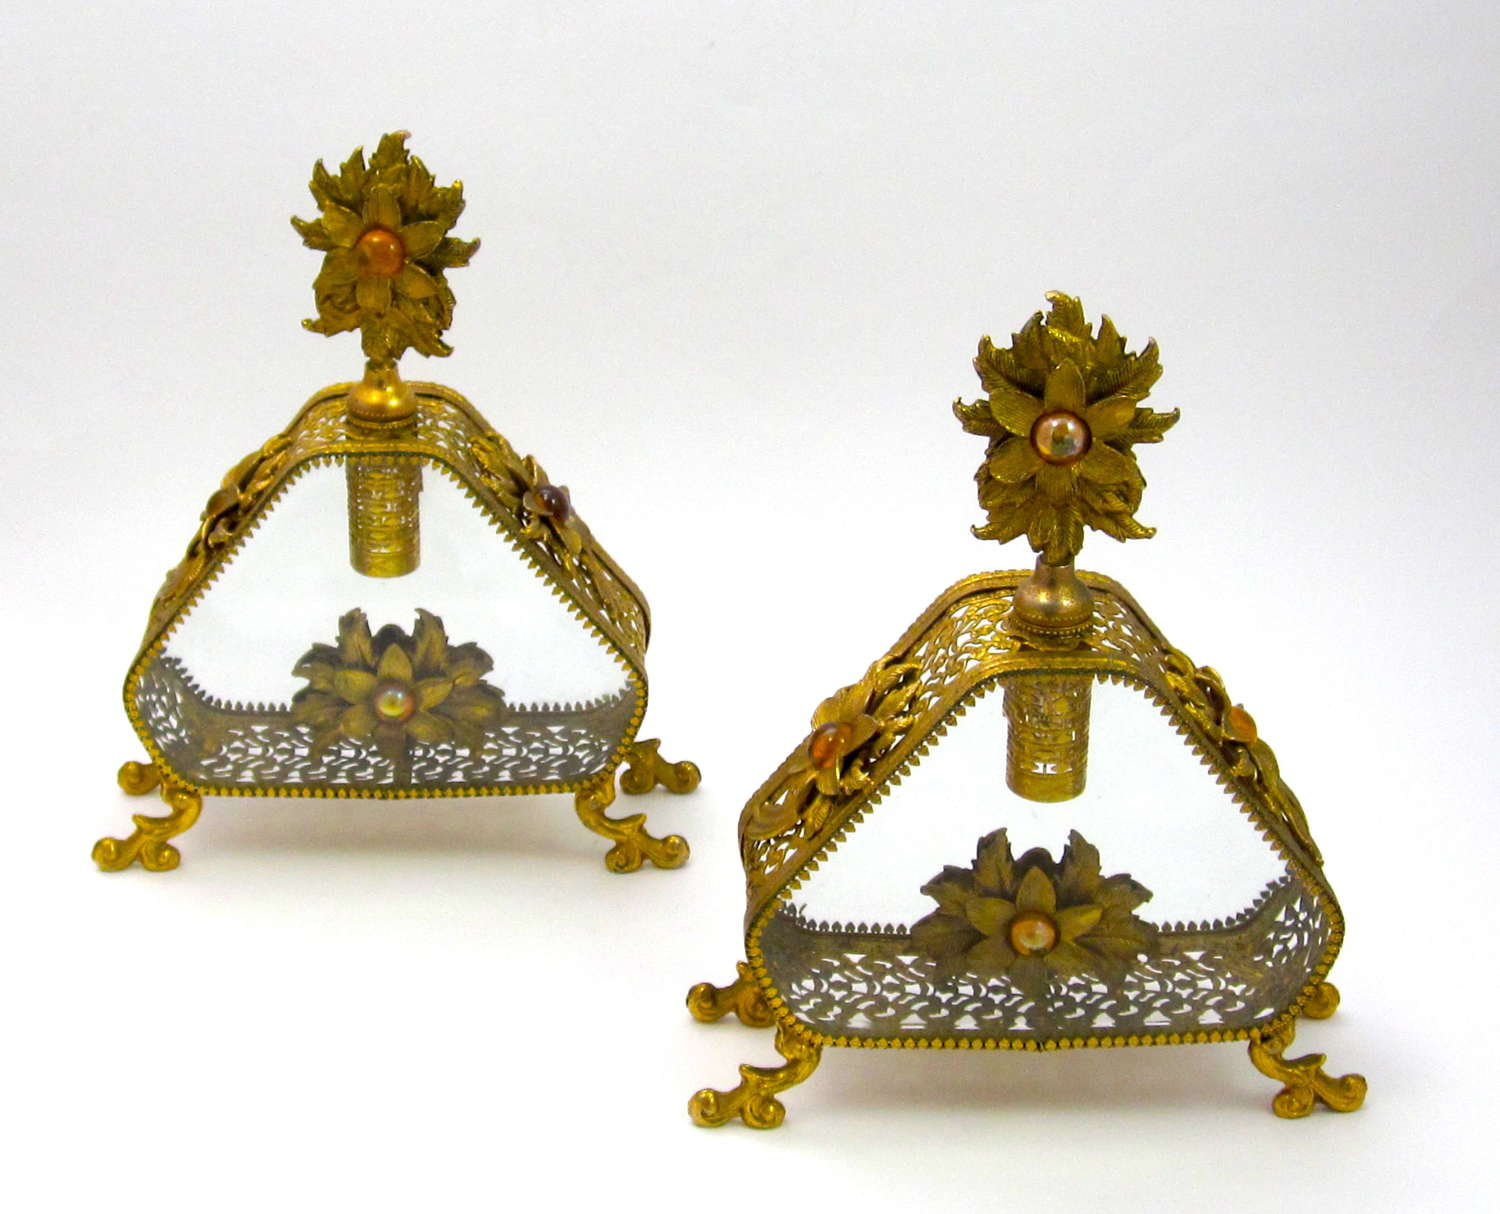 Pair of Large Antique French Jewelled Perfume Bottles